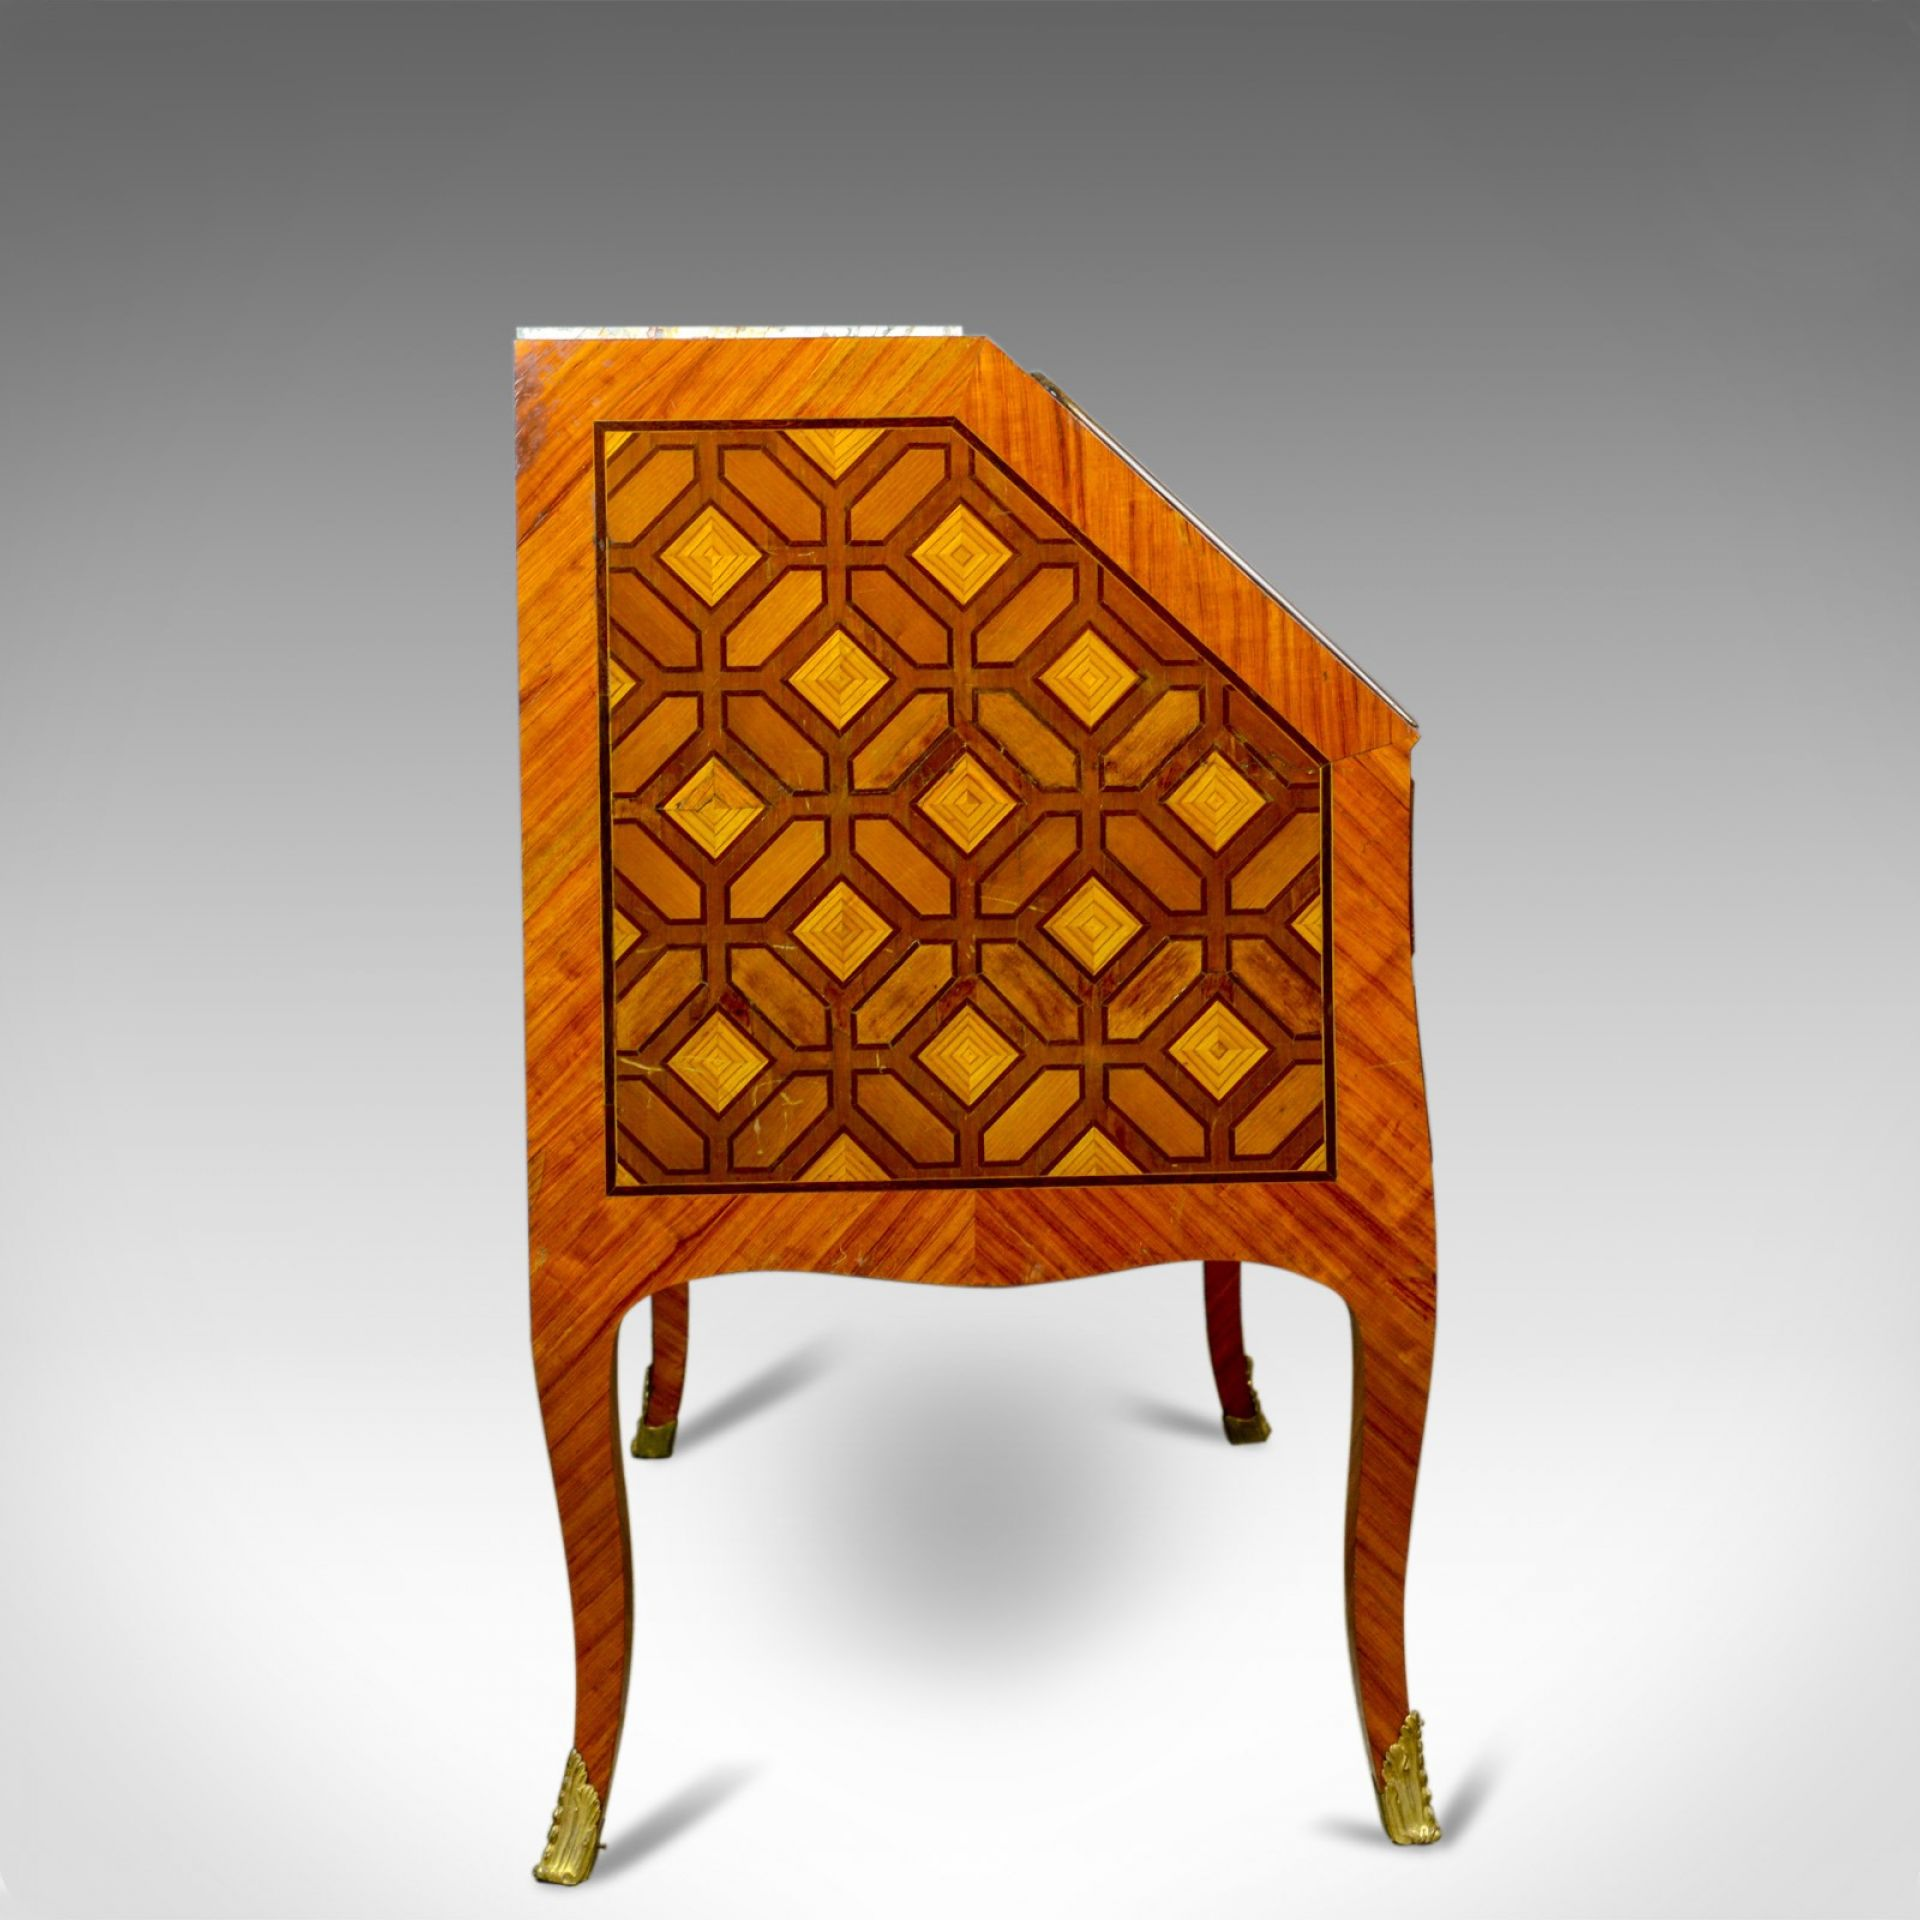 Antique Bureau, French, Marble Top, Kingwood, Marquetry Desk, Circa 1900